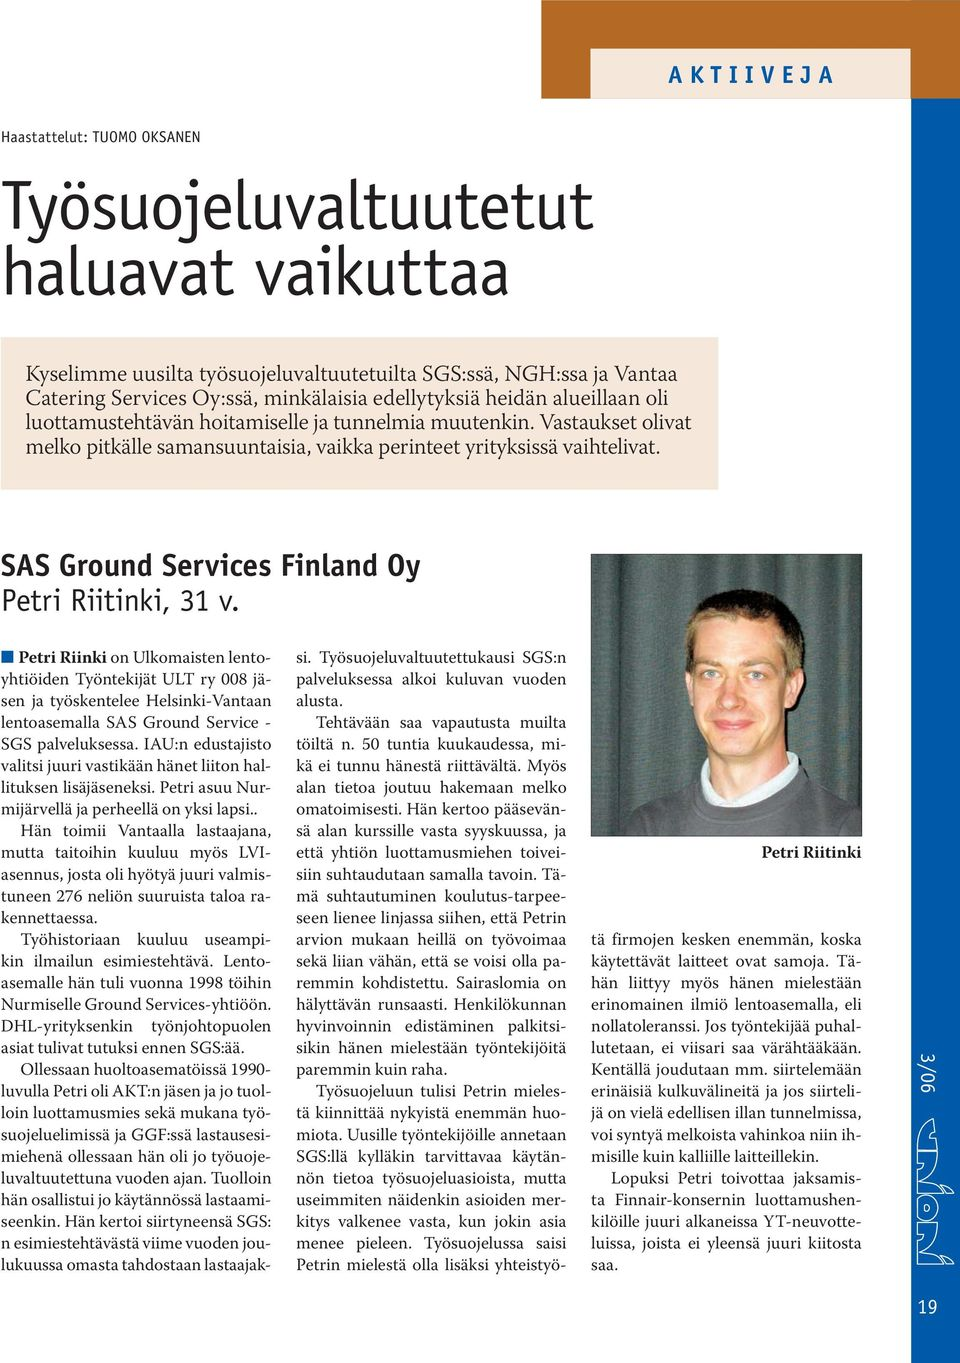 SAS Ground Services Finland Oy Petri Riitinki, 31 v.